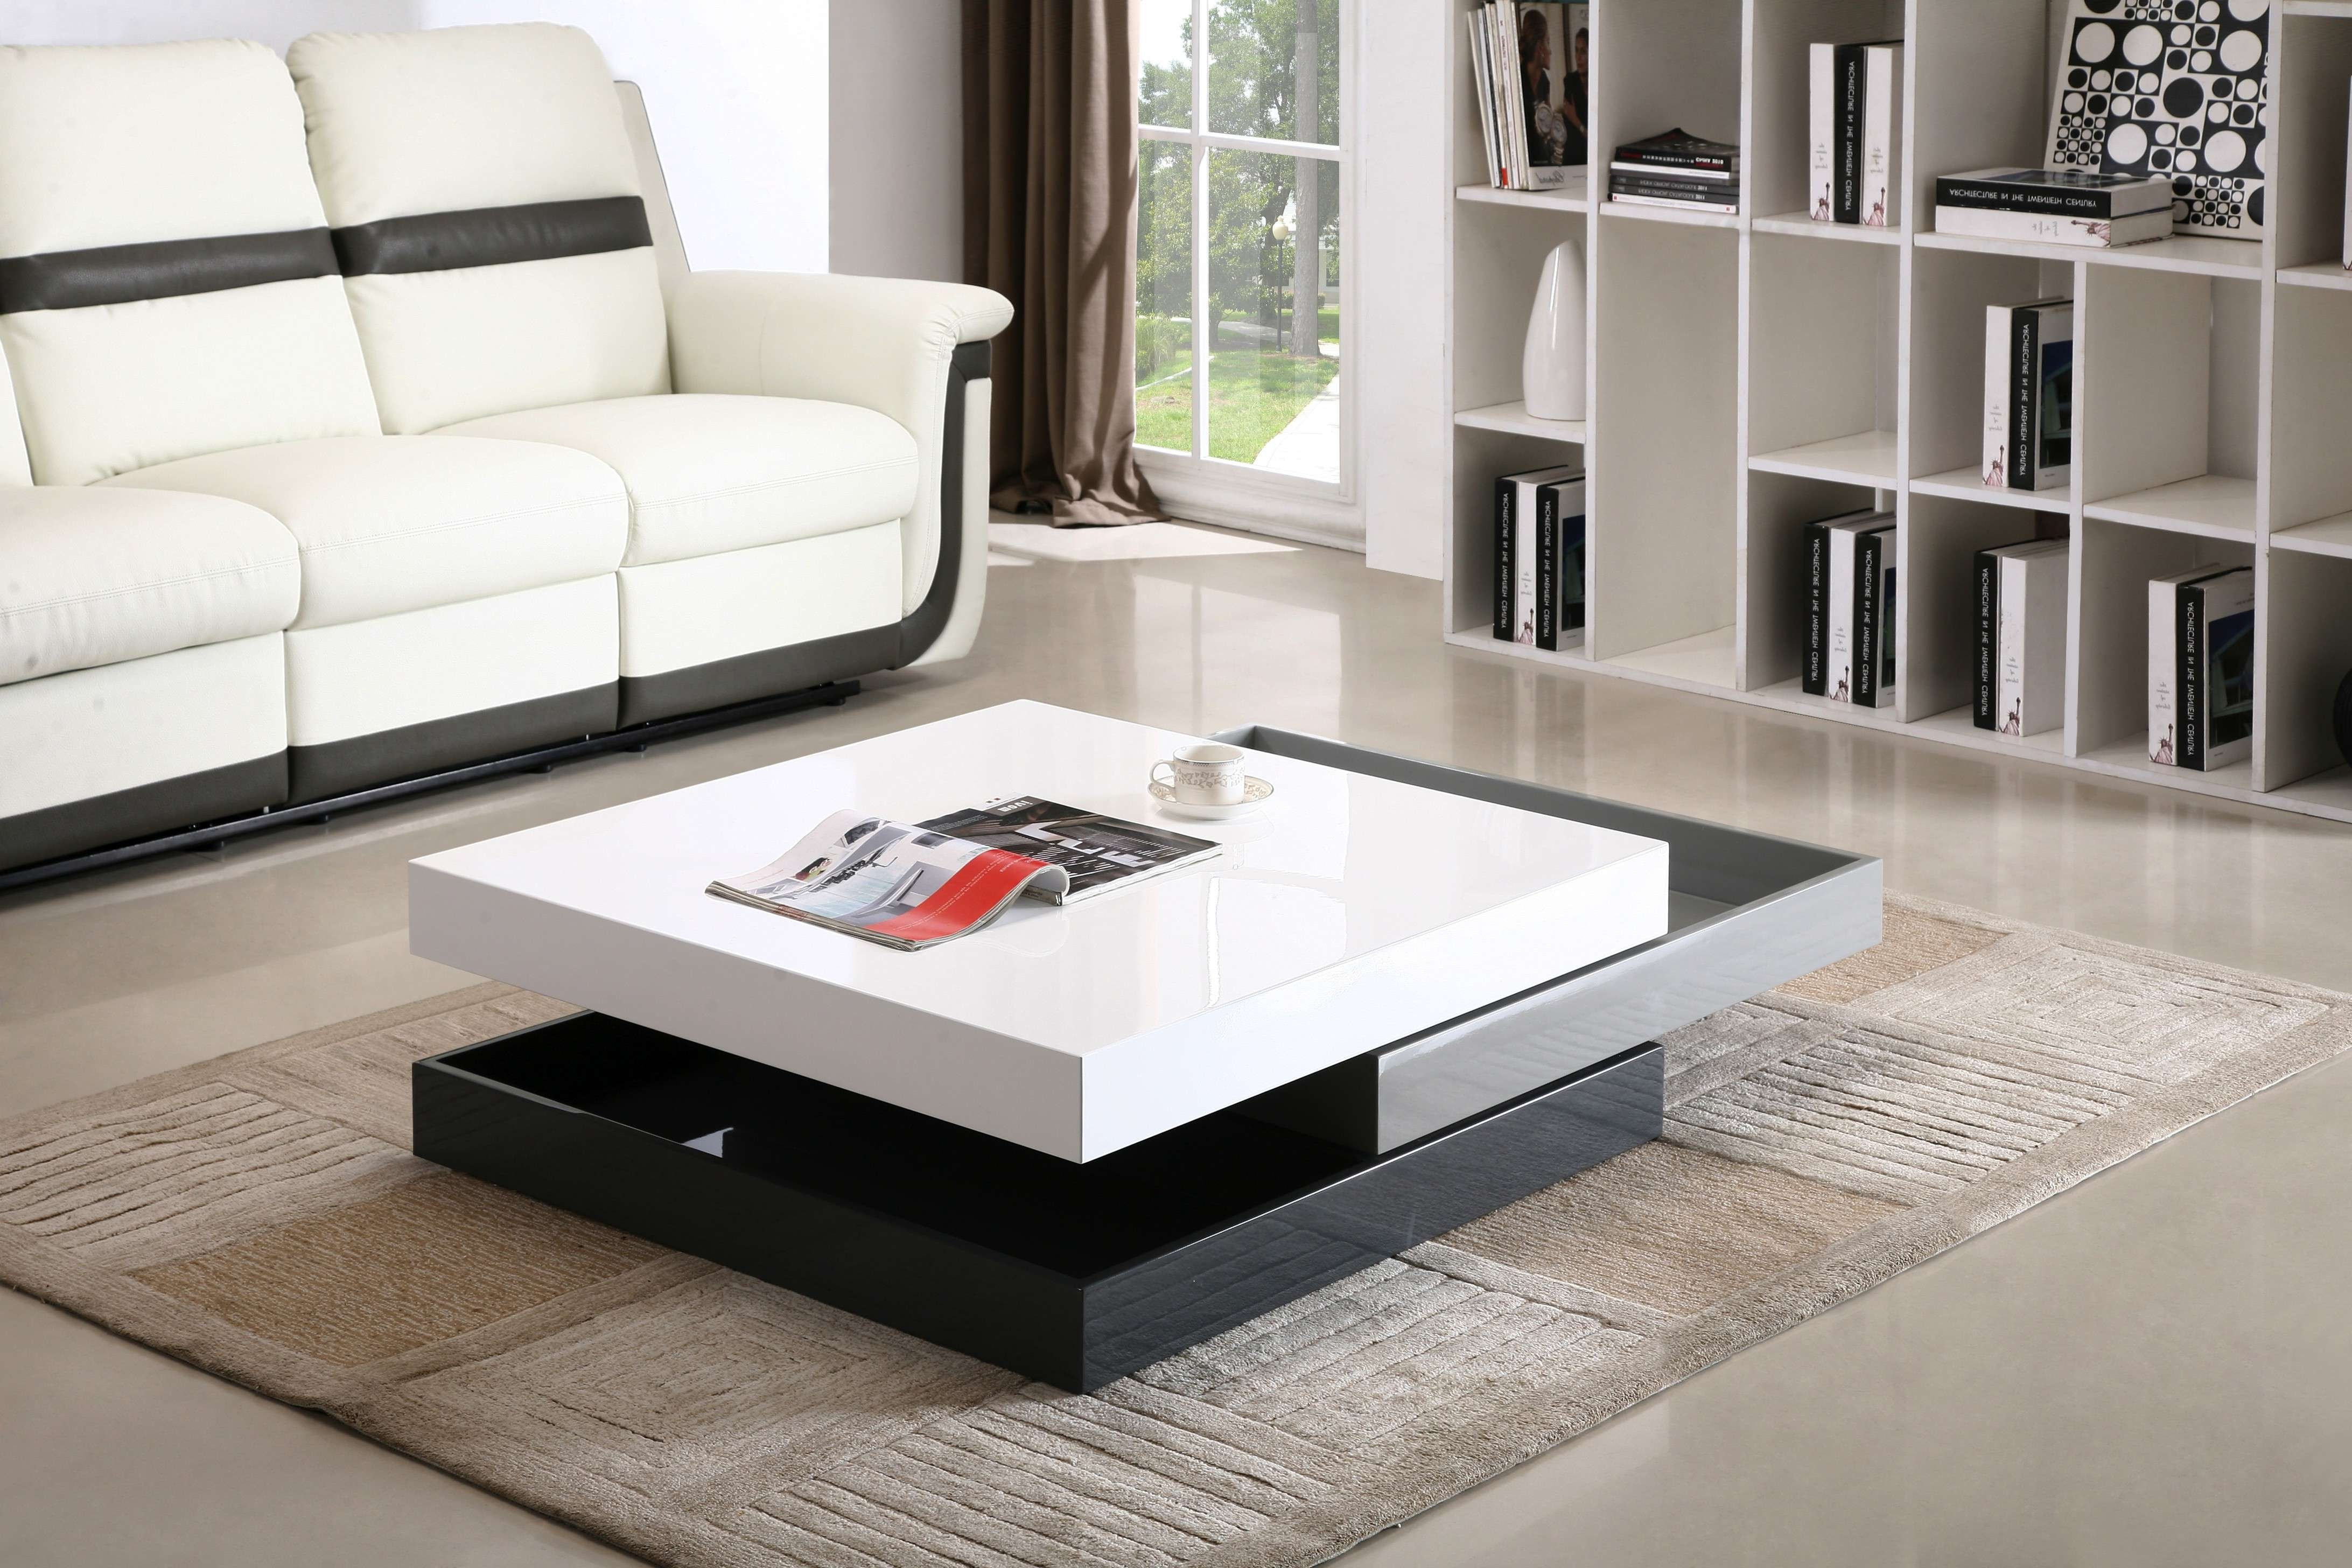 Contemporary Living Room Tables Fair Design Ideas Ef Coffee Table Intended For Current Contemporary Coffee Table (View 7 of 20)